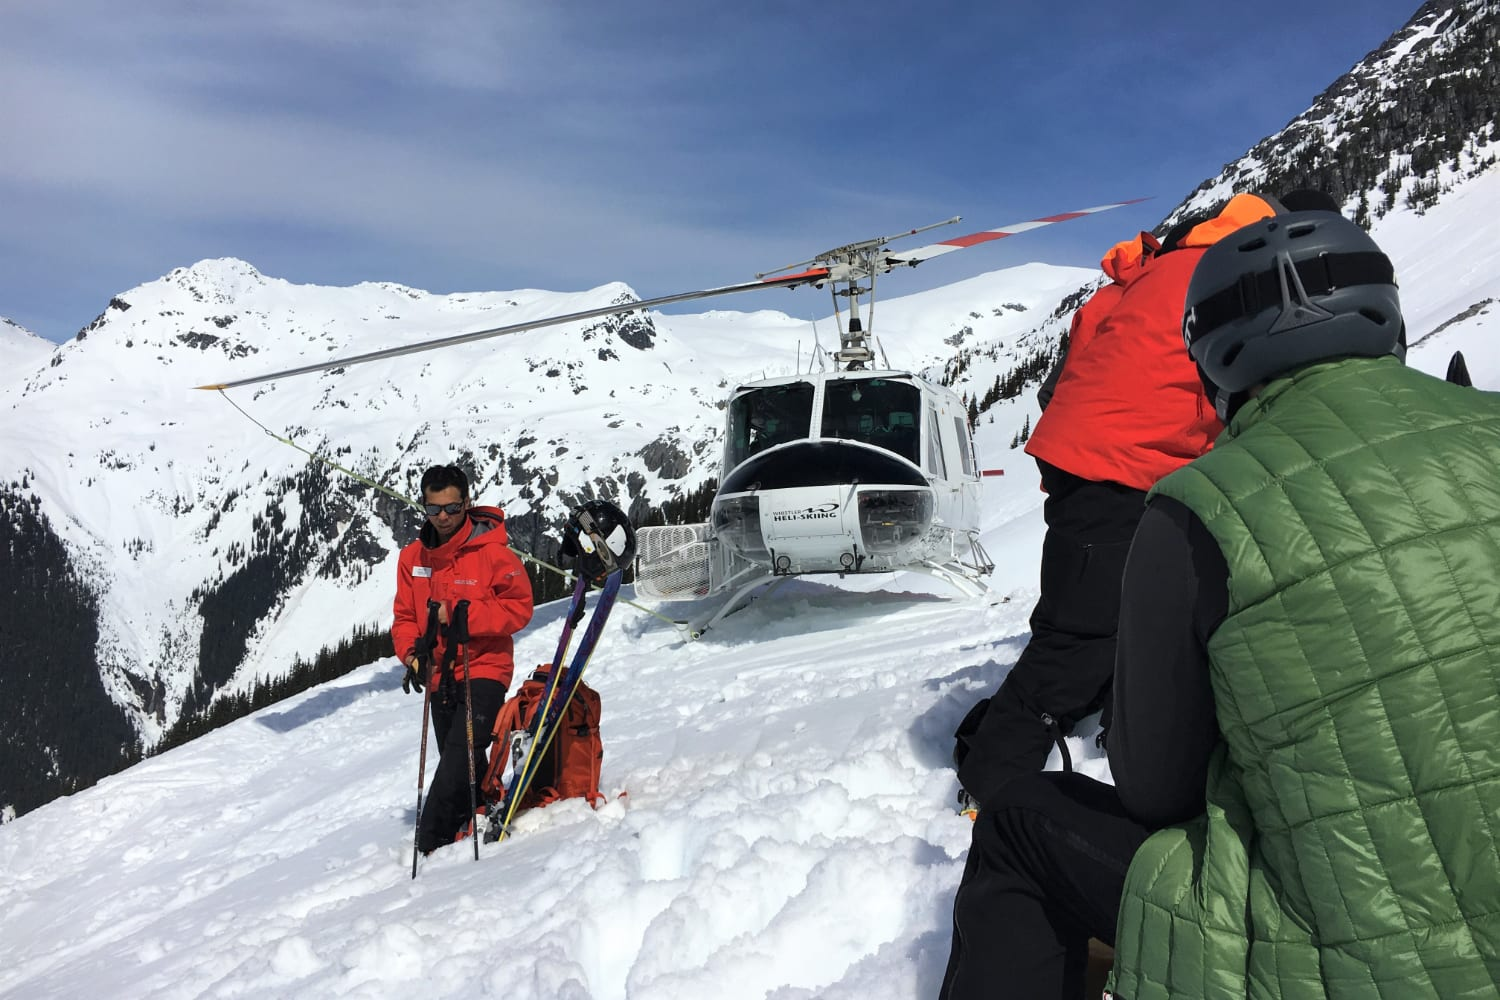 going heli skiing for the first time featured image